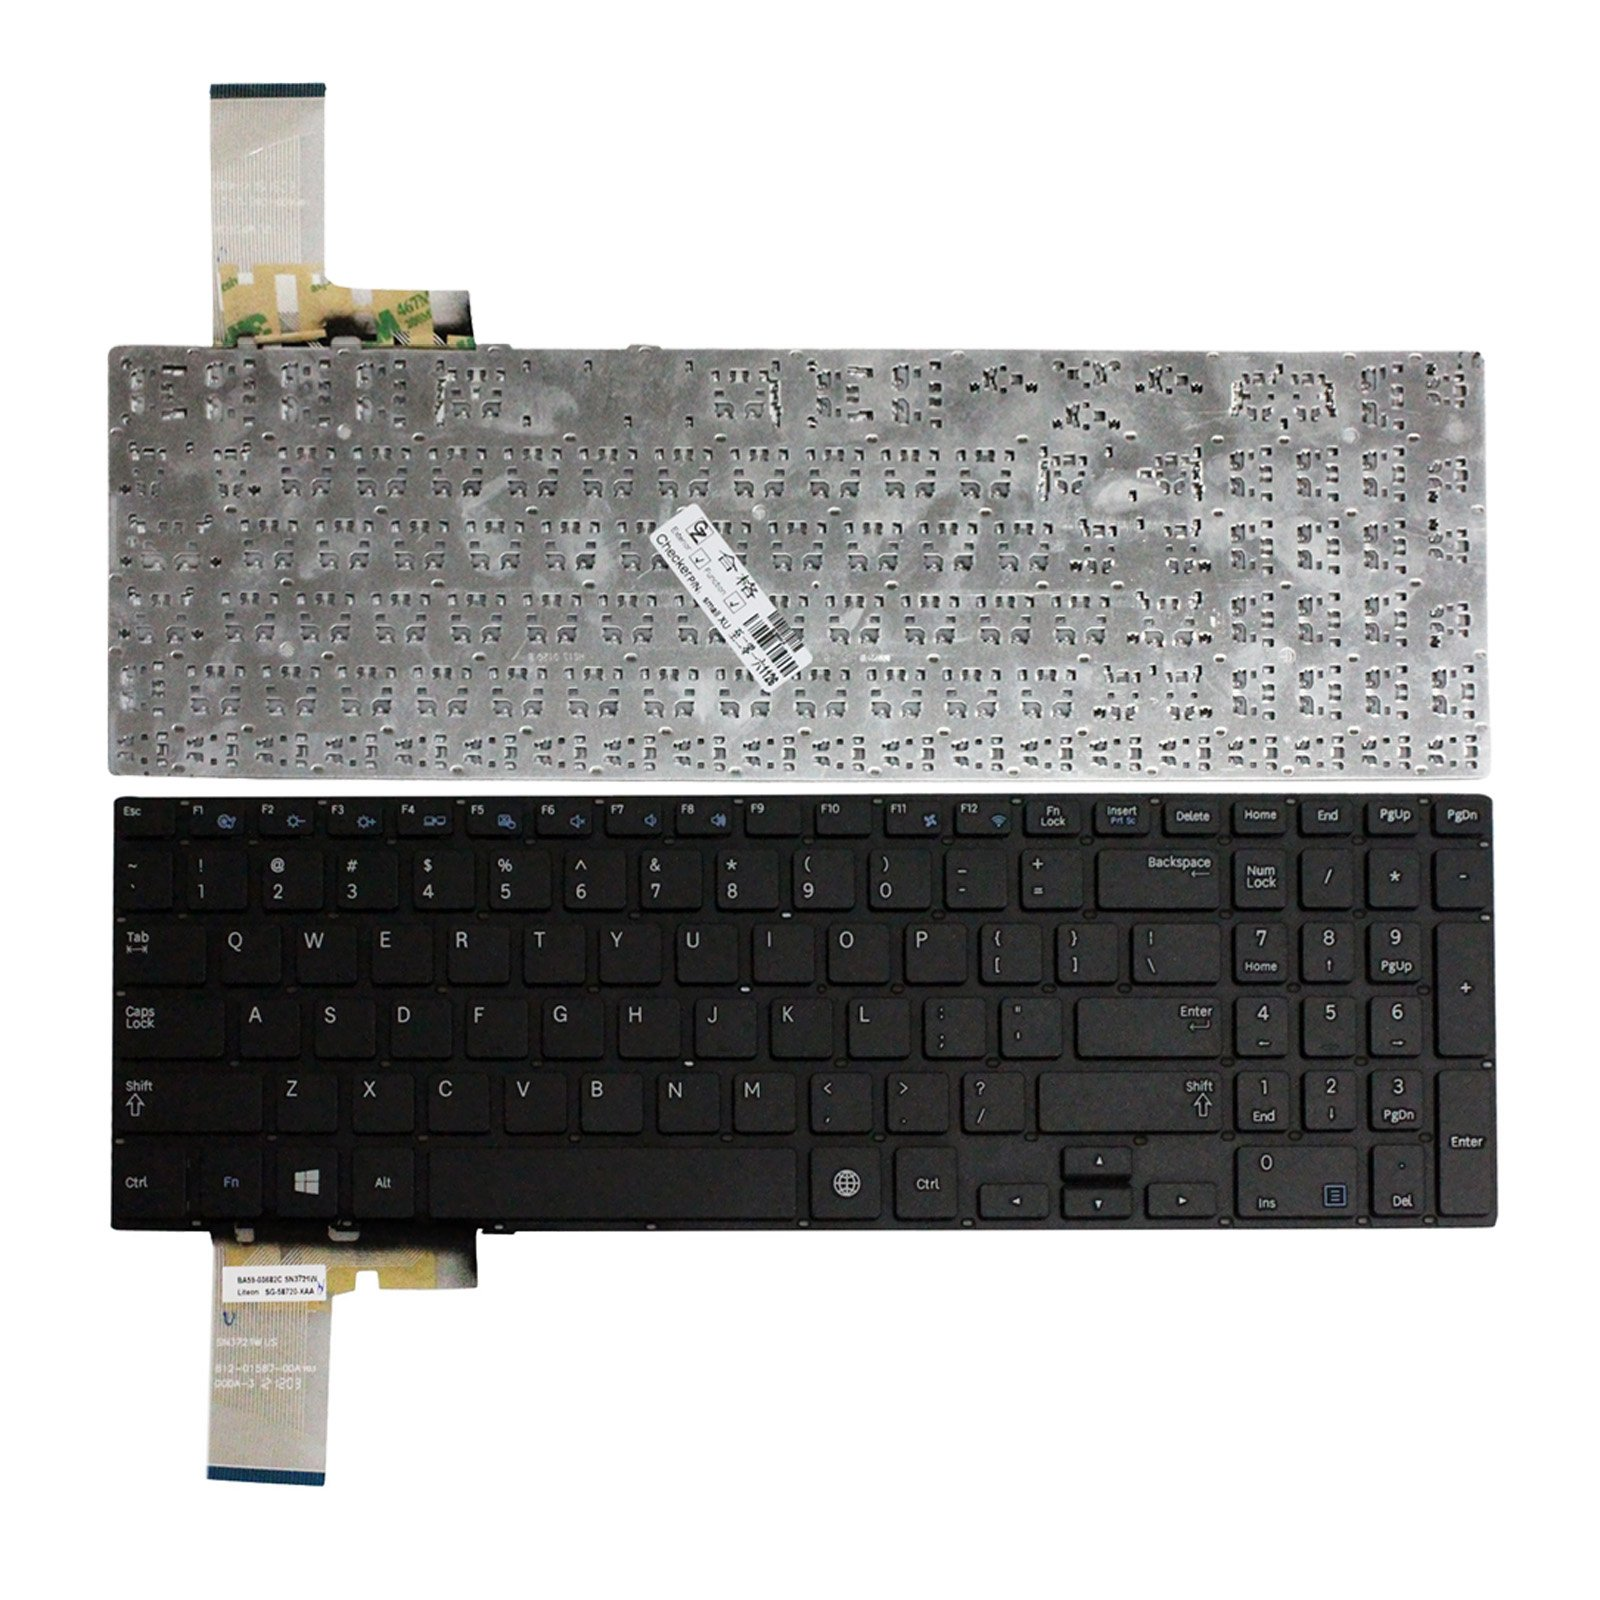 Zahara Laptop US Keyboard Withot Frame Black Replacement for Samsung ATIV Book 4 NP470R5E NP370R5E